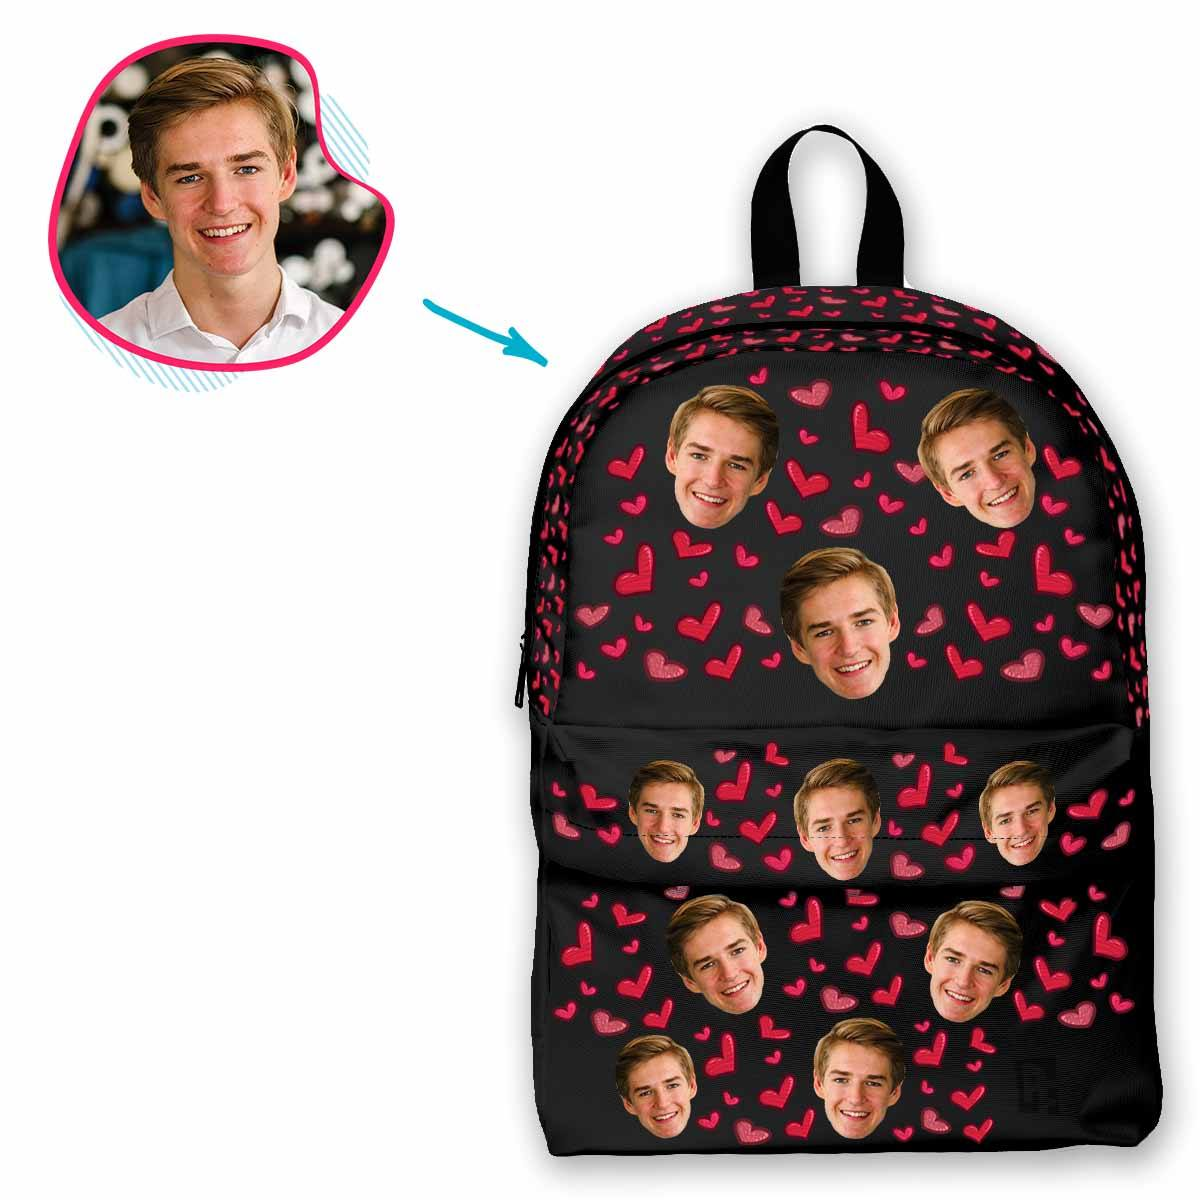 dark Heart classic backpack personalized with photo of face printed on it